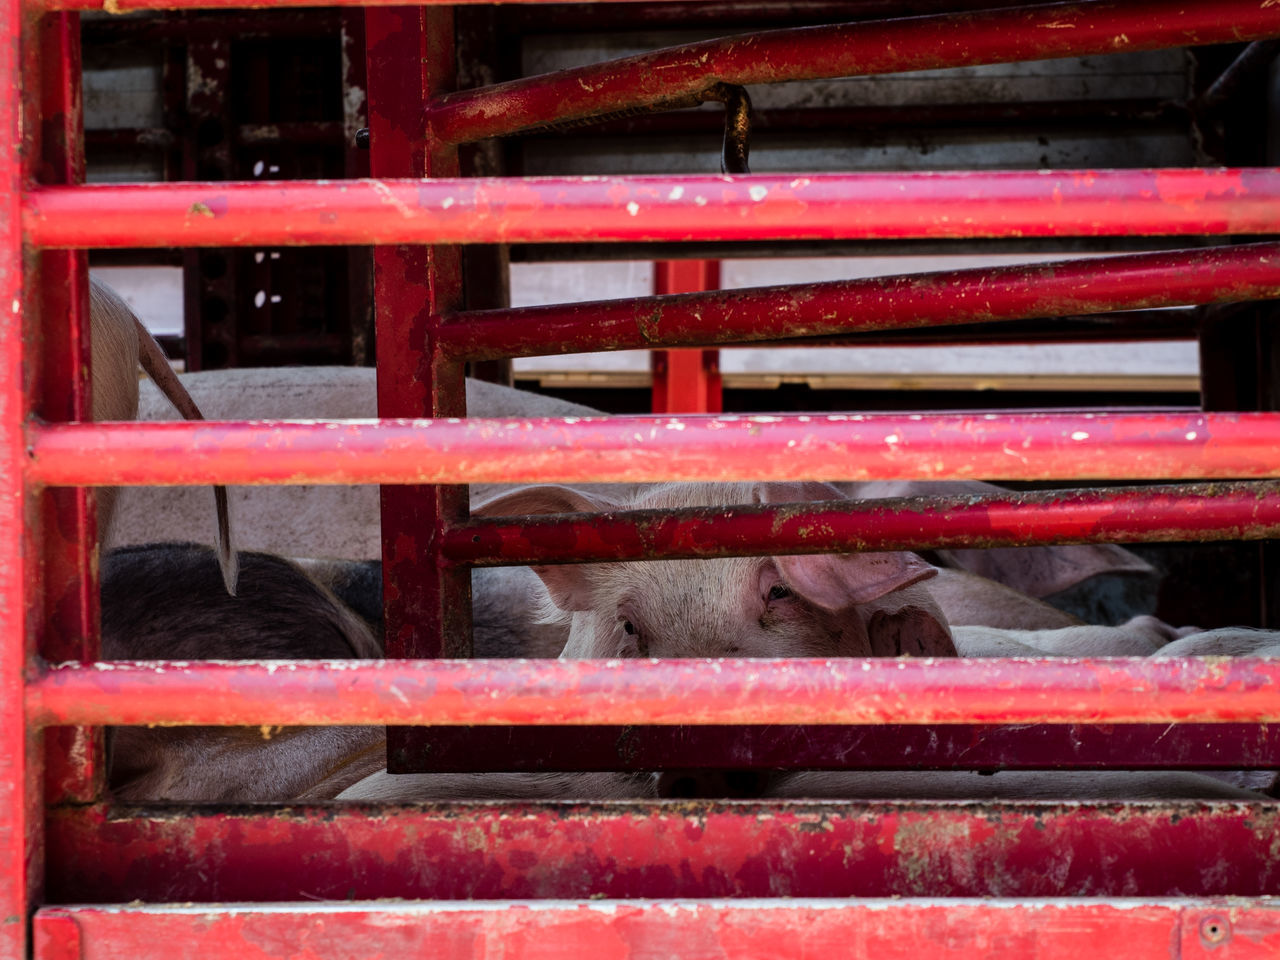 Animal Bars Behind Bars Conscience Creature Crowded Eyes Eyes Of The Cre Hugging A Tree Life Penned Pent-up Pig Pigs Pork Pork-to-be Red S Selling Vegetable Vegetarians Veggie